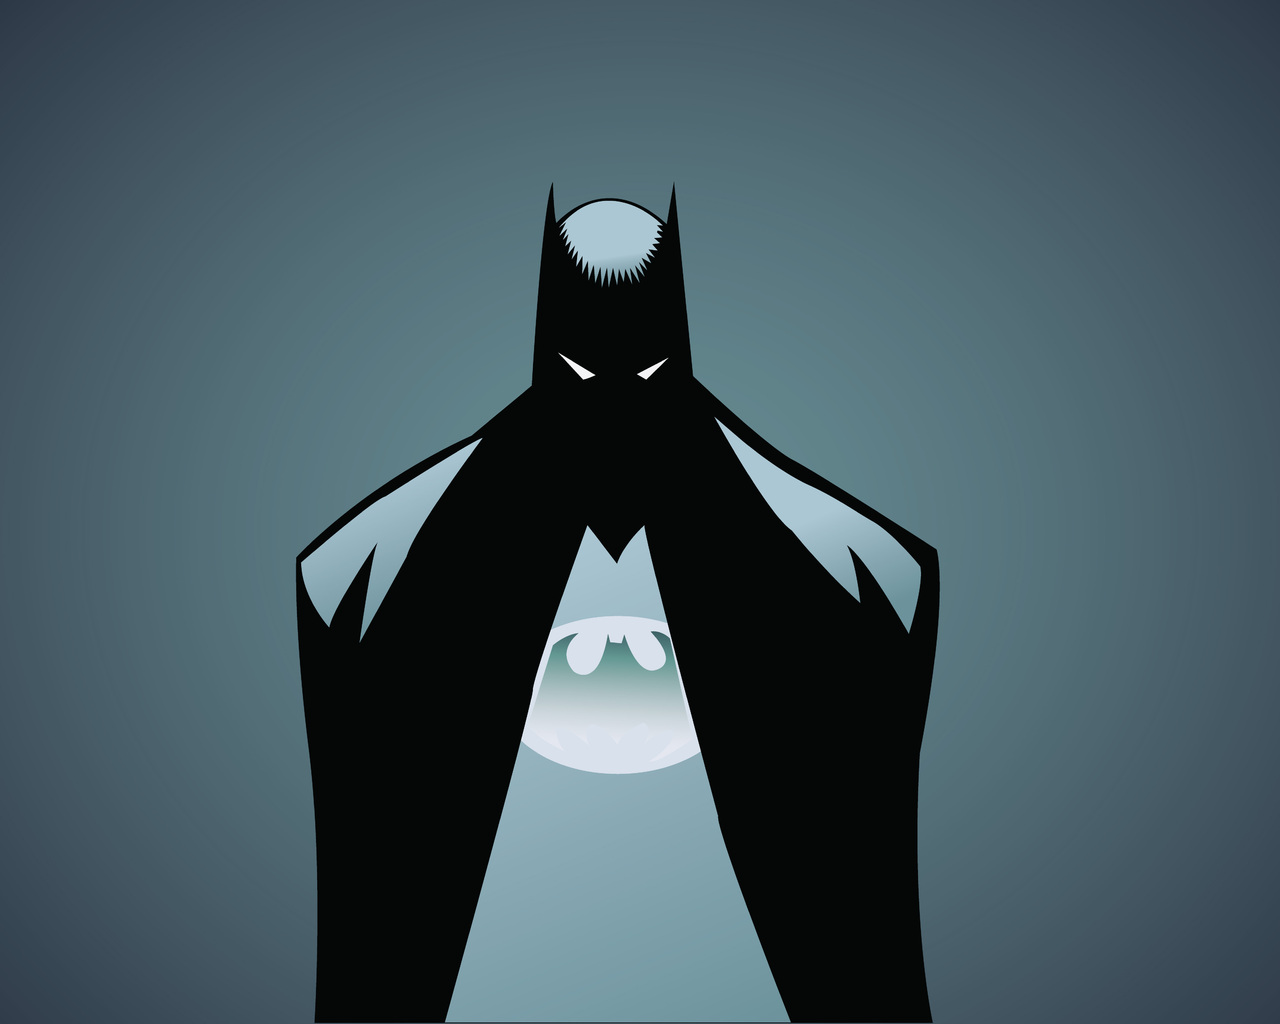 batman-minimalism-illustrator-5k-0z.jpg